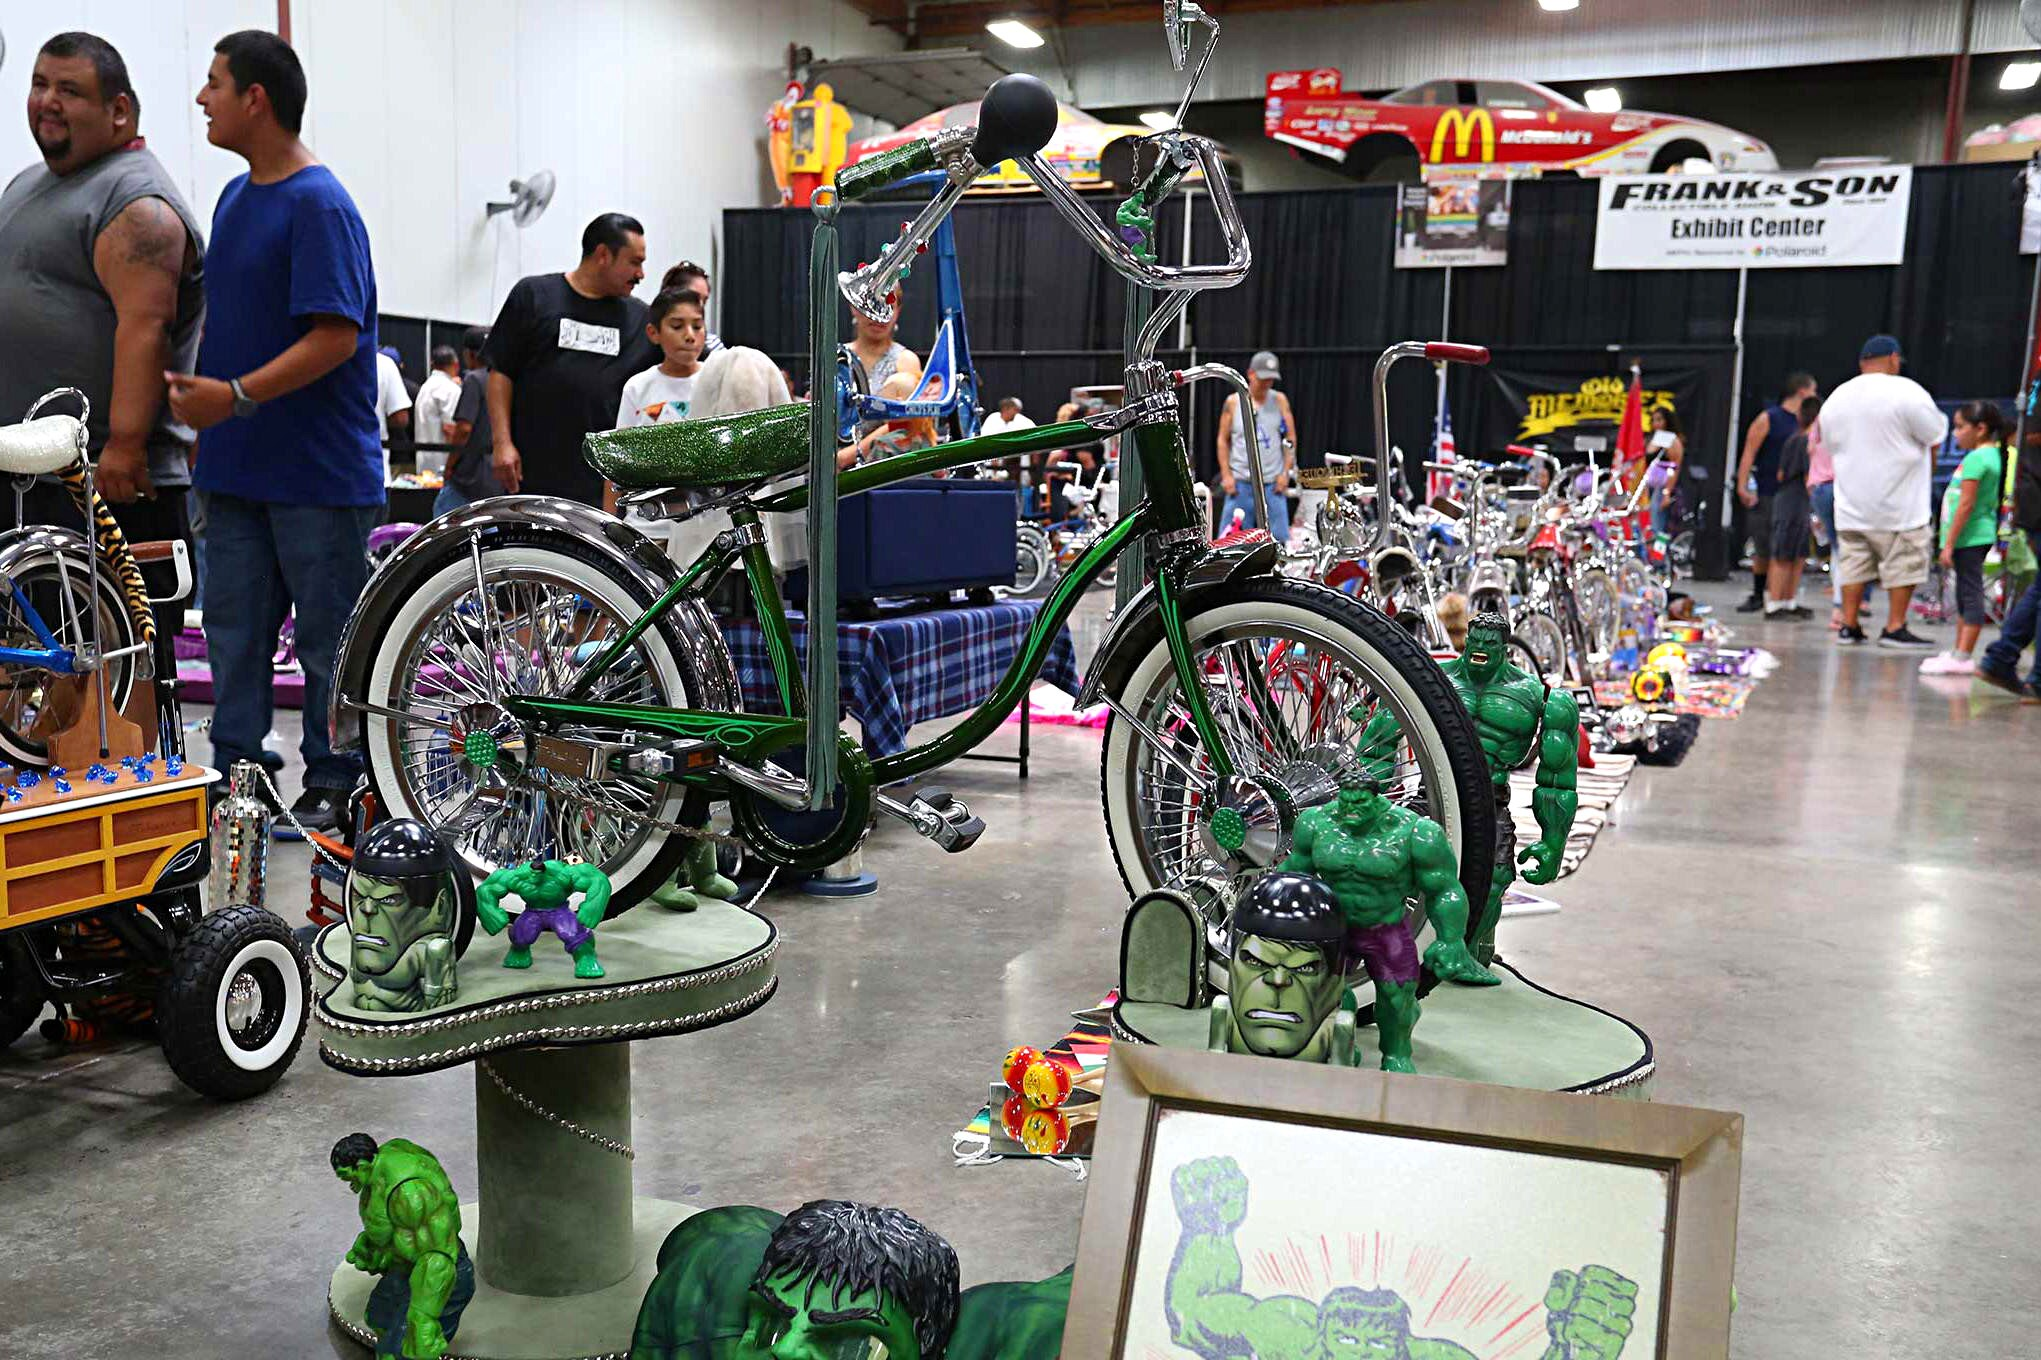 Caddy Fest 7 Bicycle Show Incredible Hulk Bicycle Lowrider